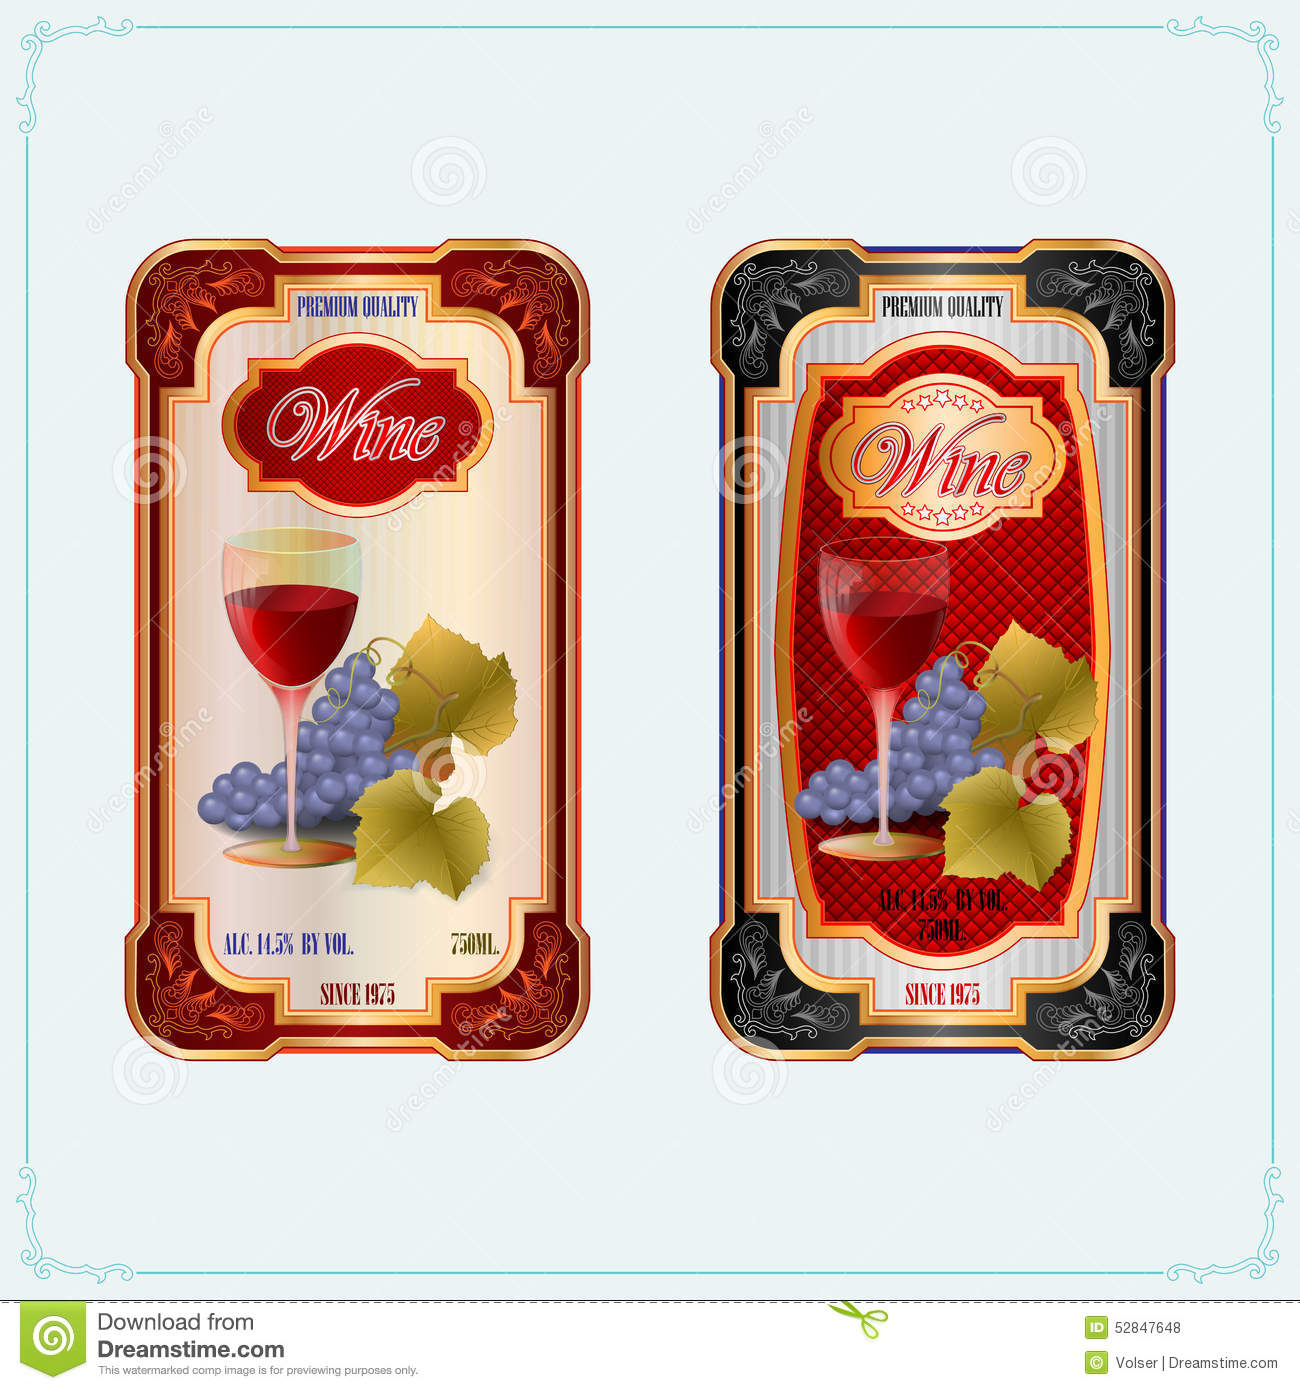 Vintage Wine Labels, Template Design. Royalty Free Vector